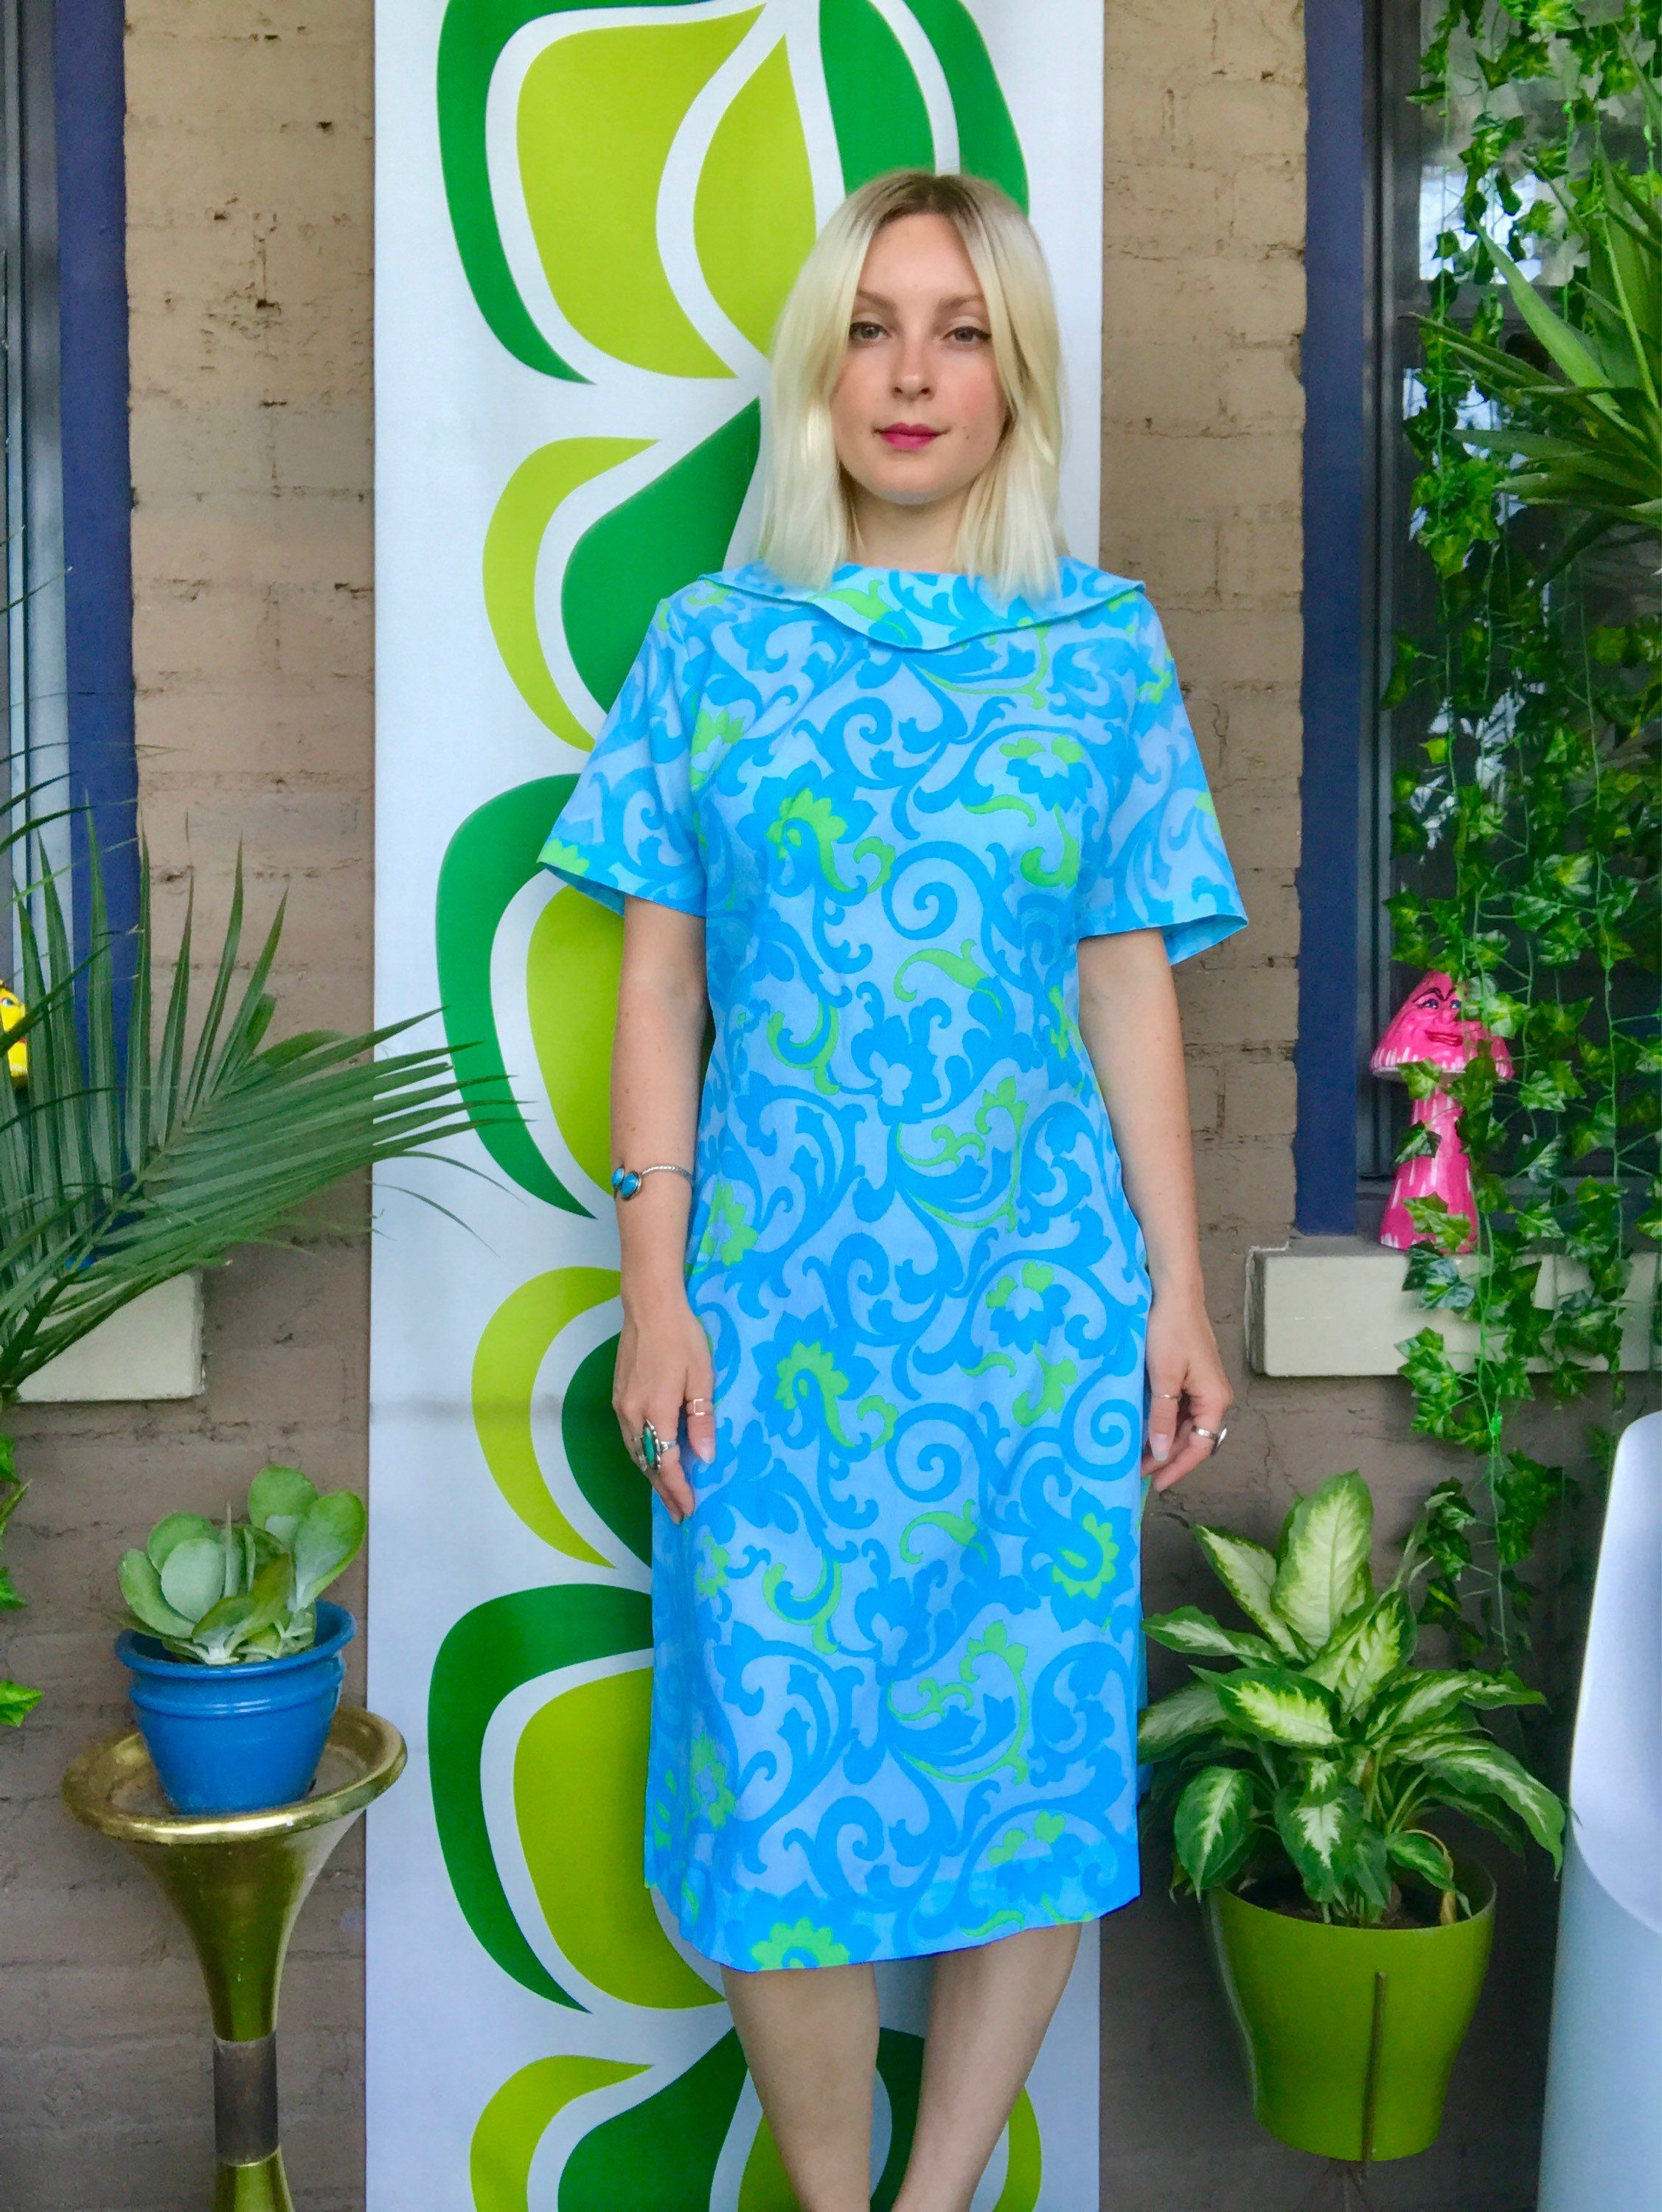 4daa9a820d5 1960s psychedelic swirl scalloped roll collar midi dress plus size blue  green day glo mod 60s short sleeve day dress XL XXL